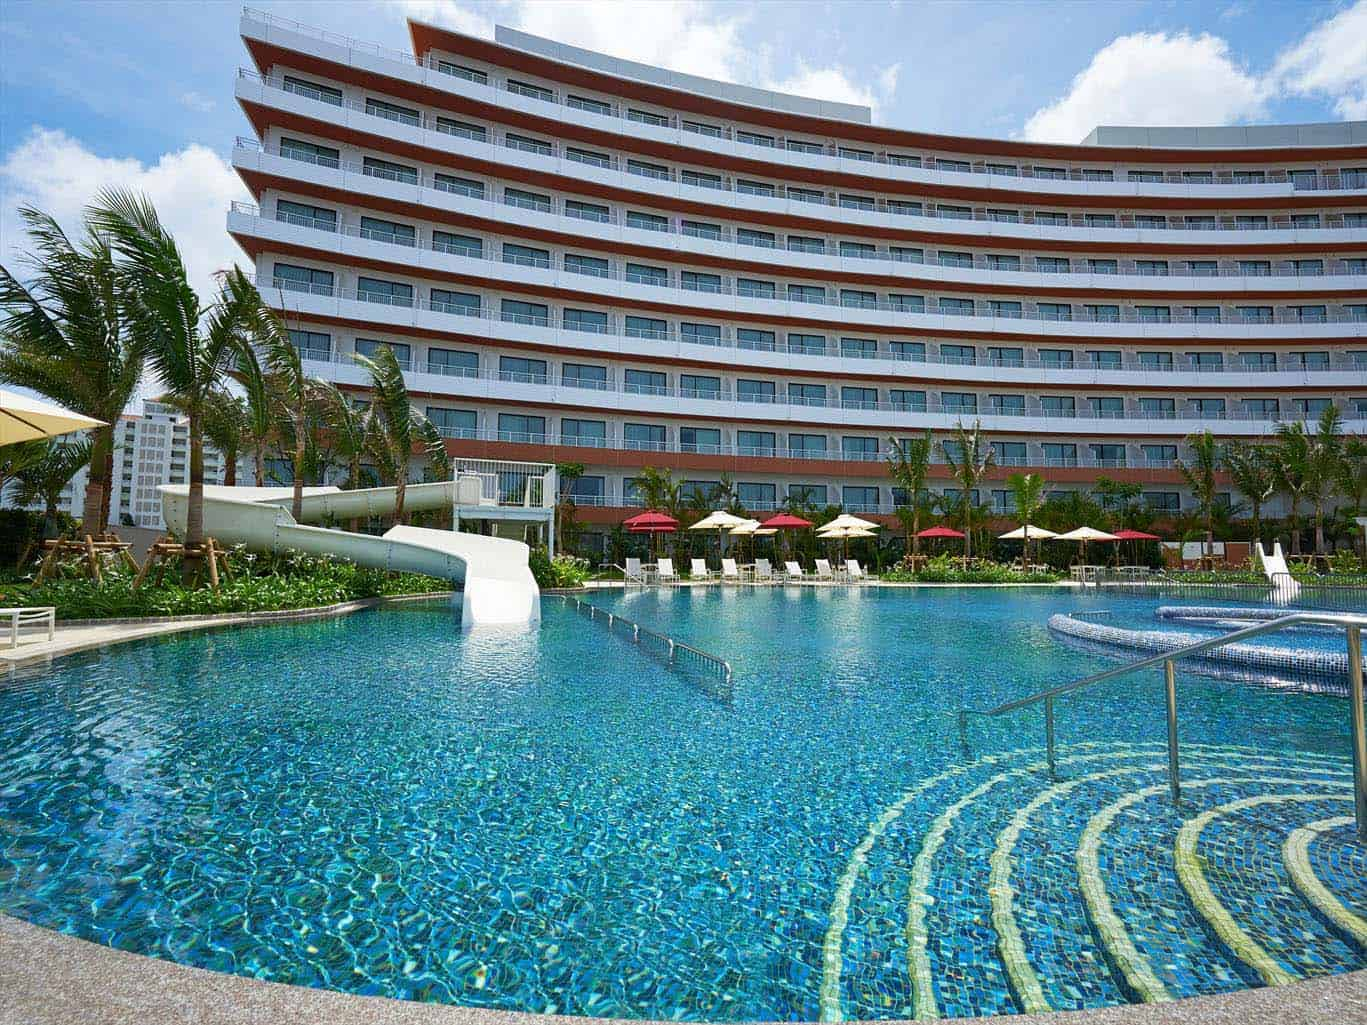 Hilton Okinawa Chatan Resort